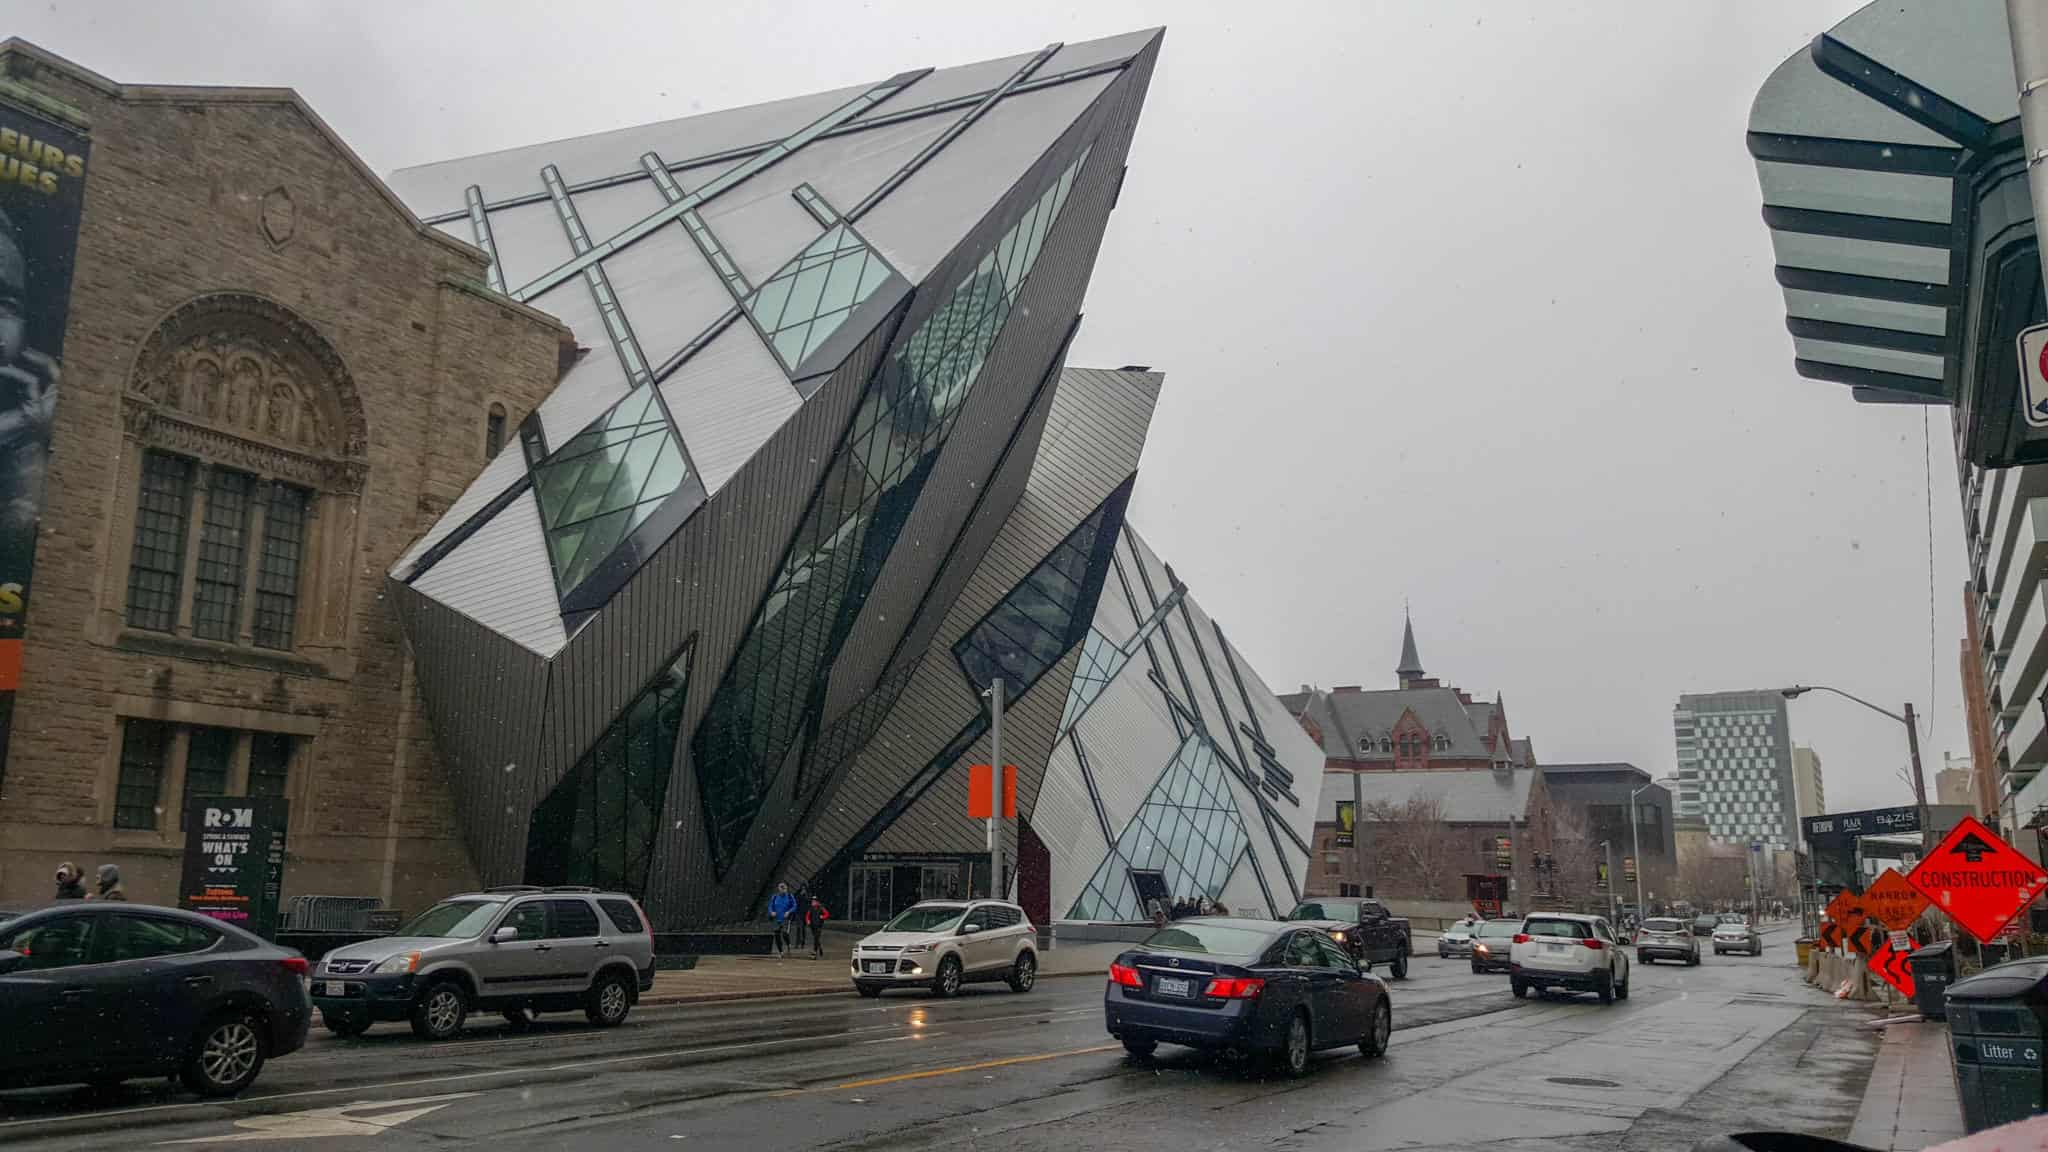 Visiting the ROM is one of the free things to do in Toronto